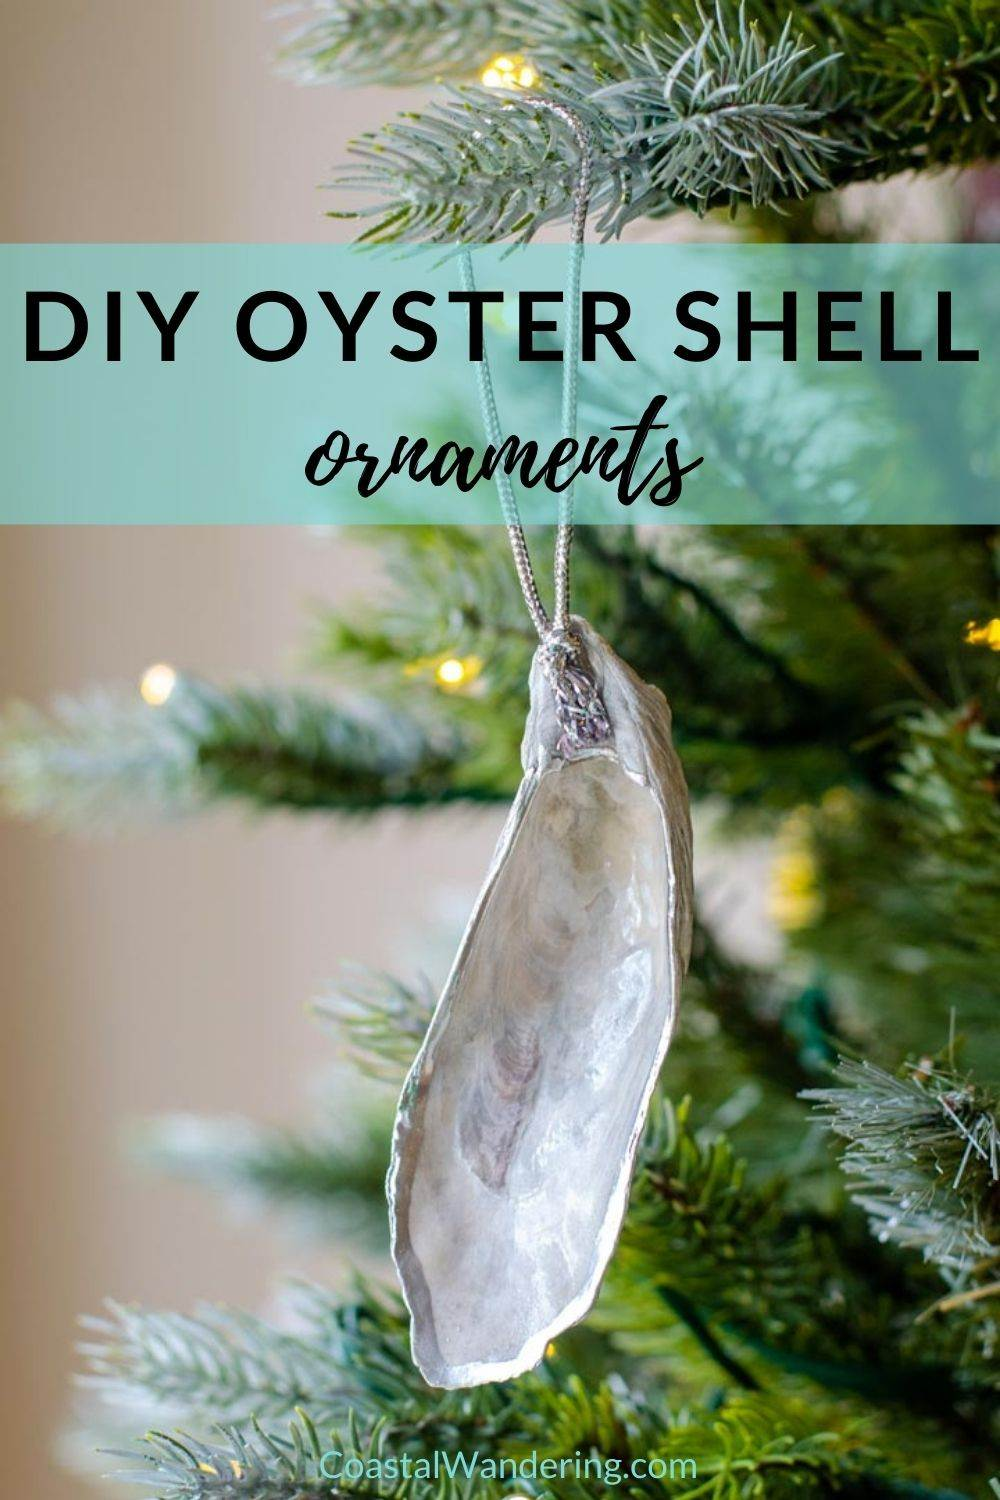 How To Make Oyster Shell Ornaments